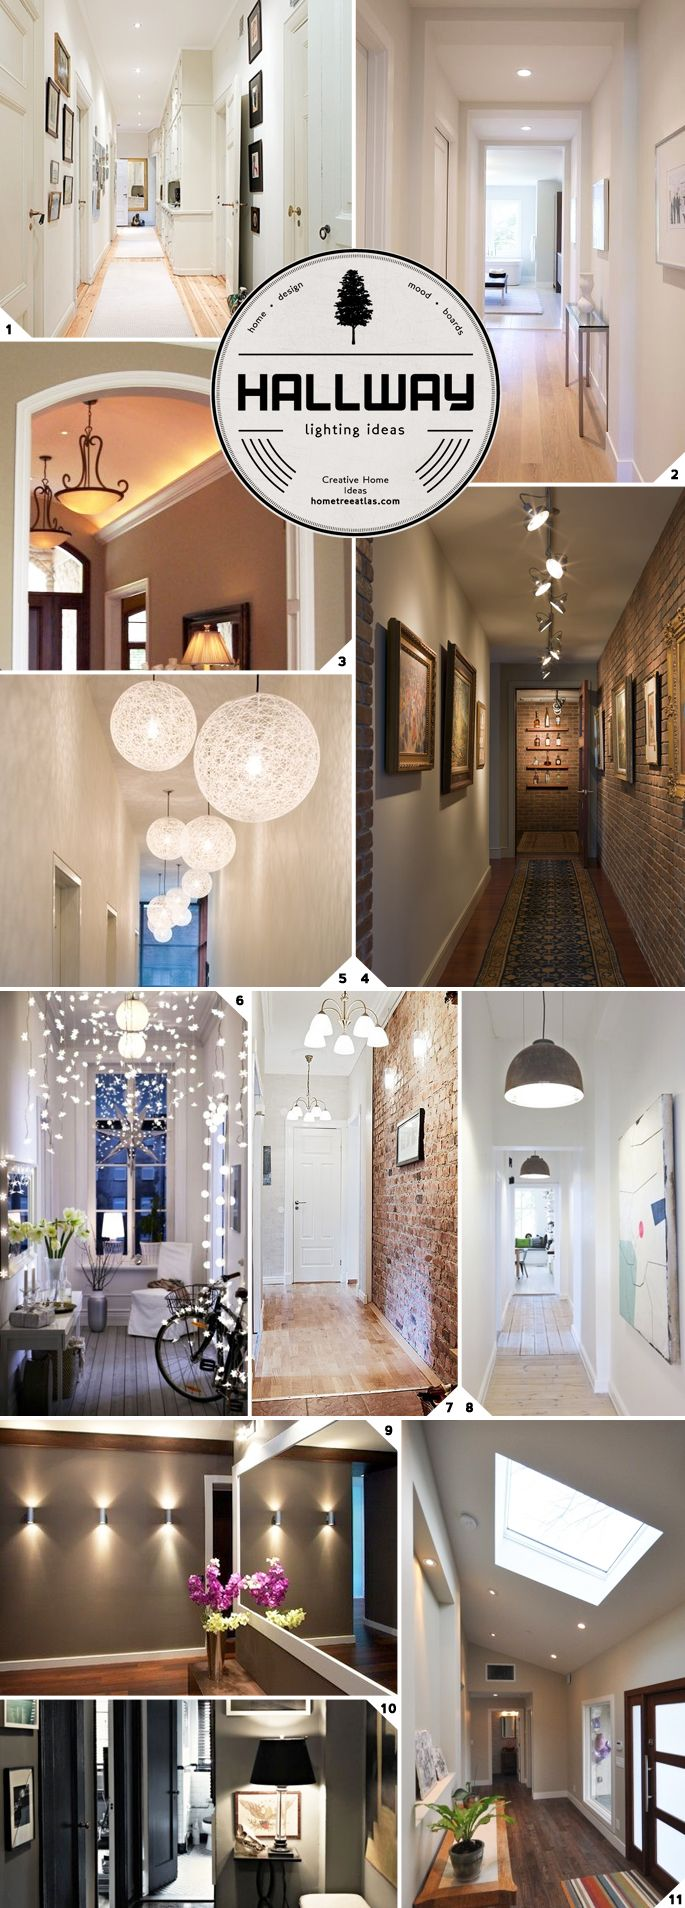 Leave No Space Dark: Hallway Lighting Ideas